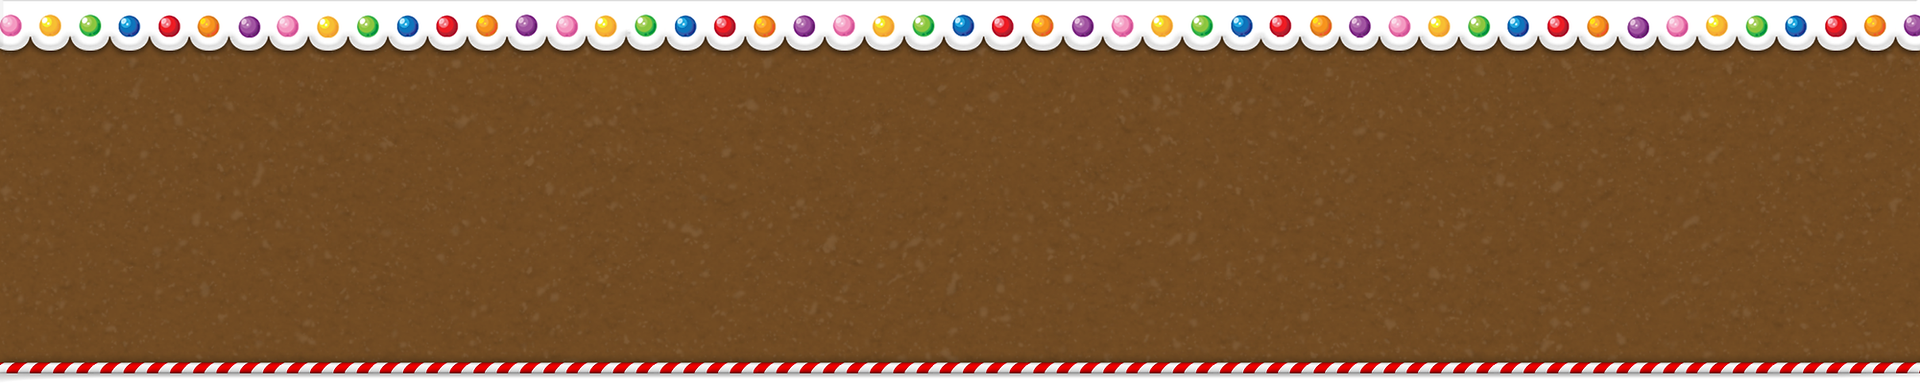 GINGERBREAD BAR2.png